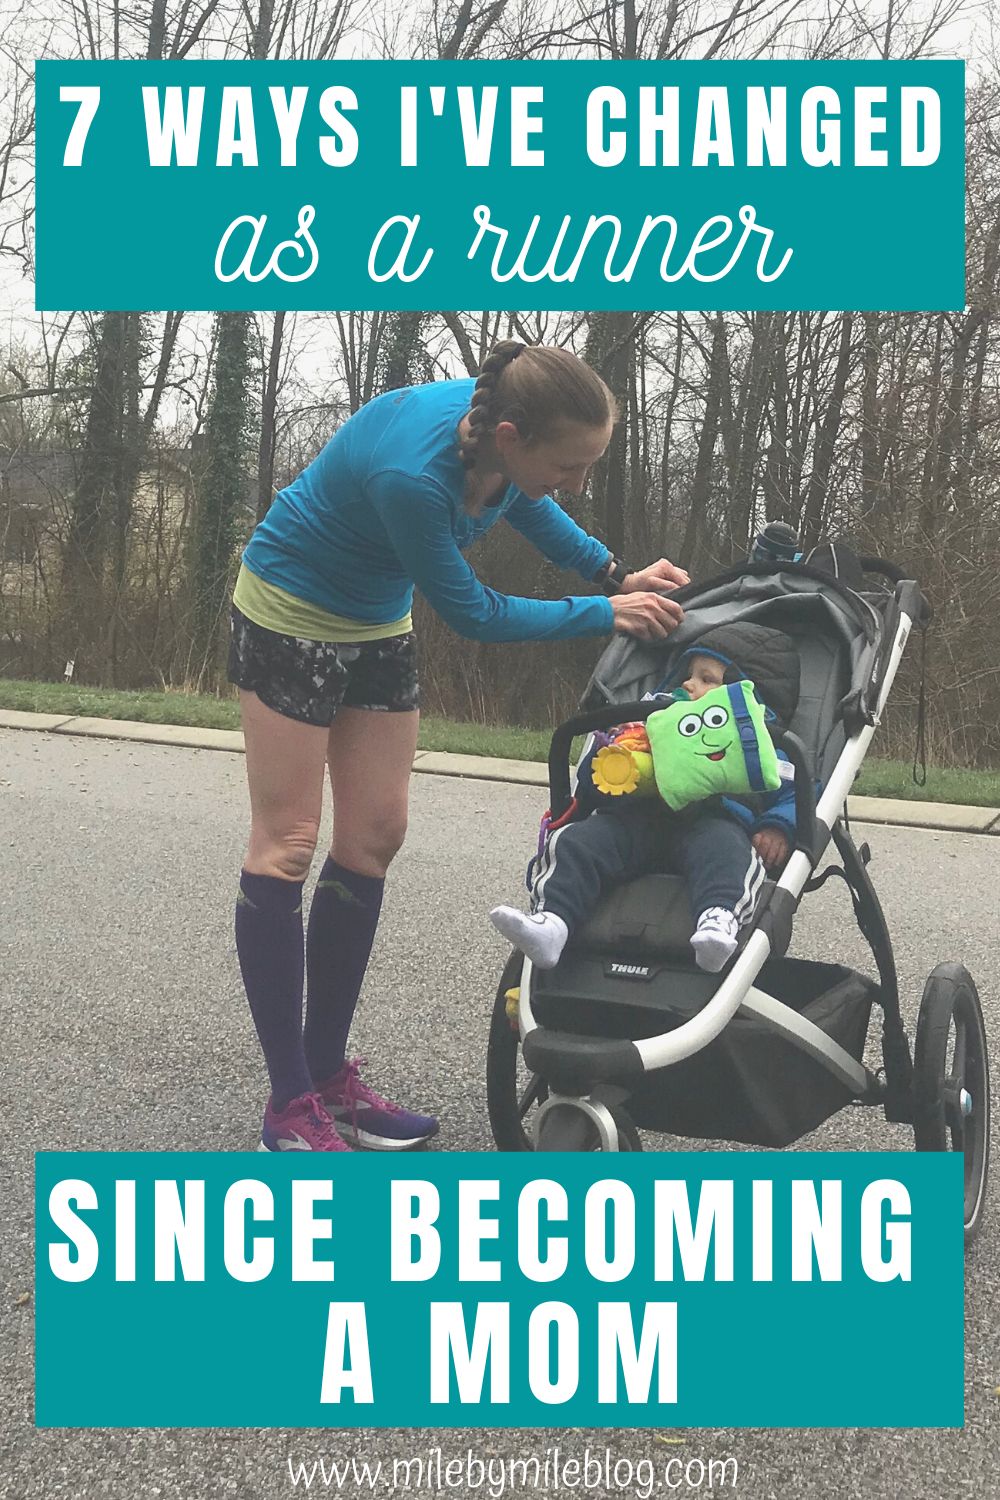 My running looks a little different now that I'm a parent. Here are the ways I've changed as a runner since becoming a mom.